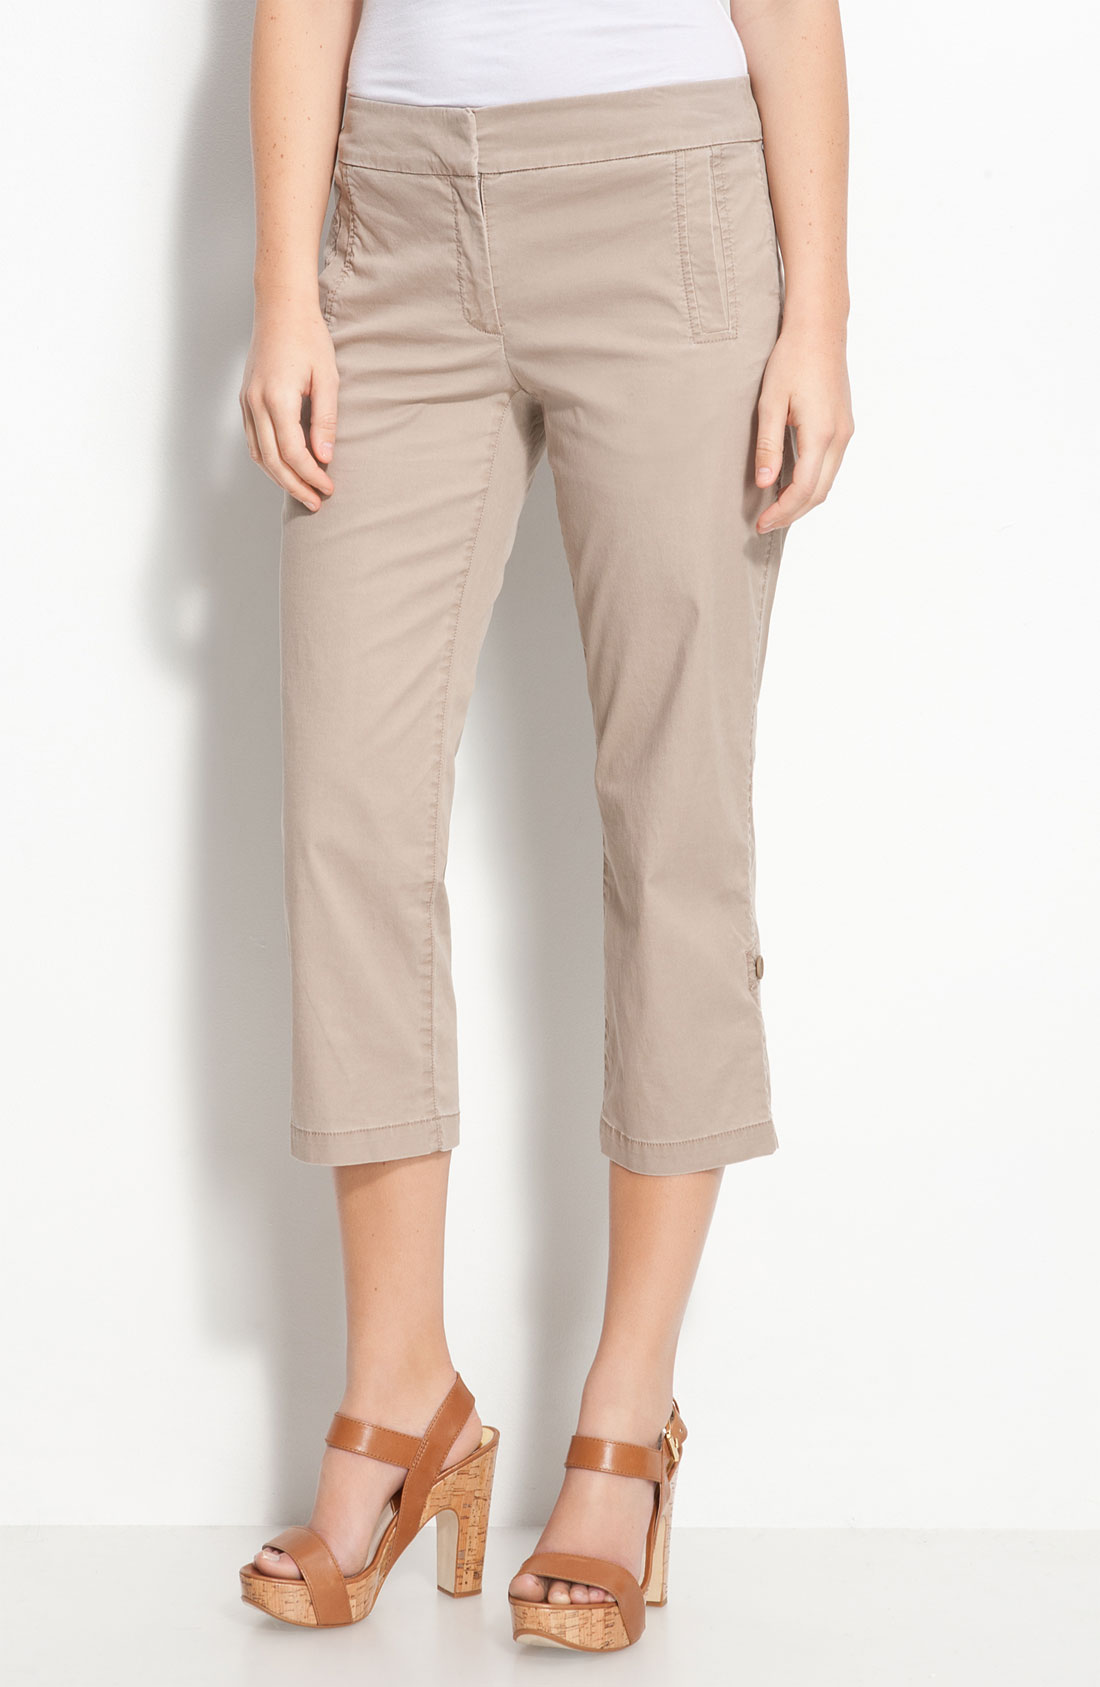 EILEEN FISHER NEW Tan Twill Convertible Cuffed Capri Pants Petites ...